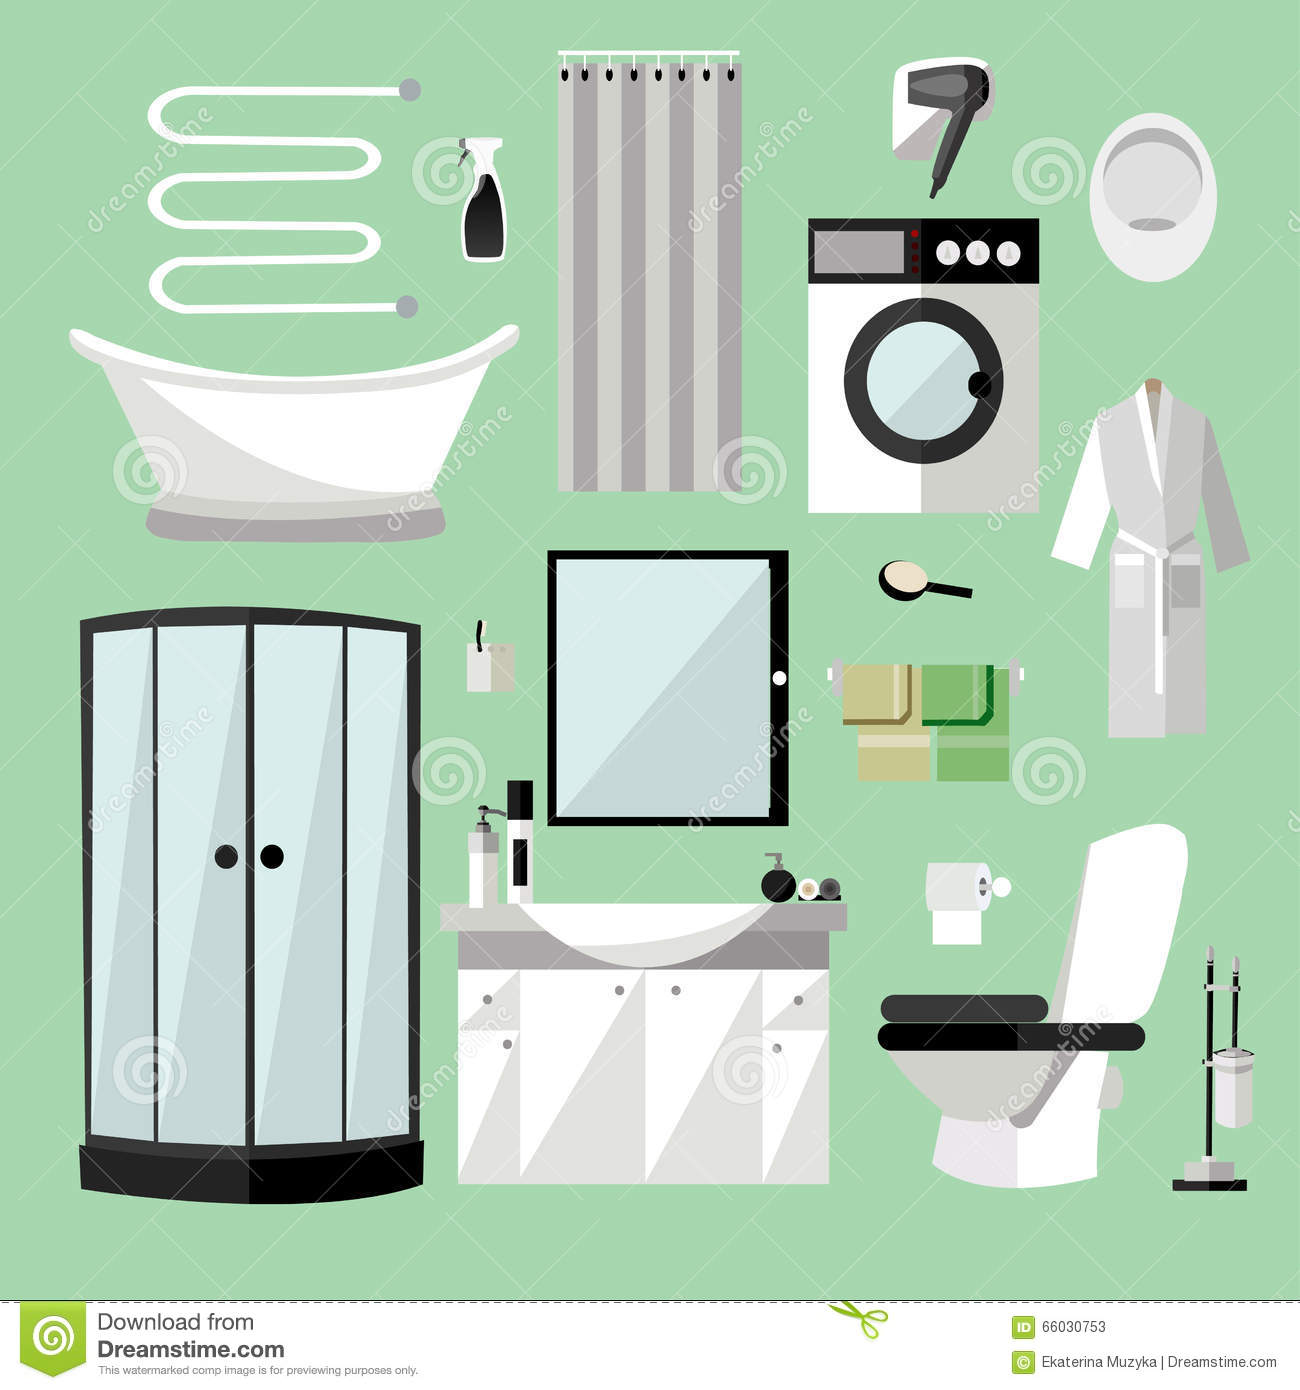 Beau Bathroom Interior Furniture. Vector Illustration In Flat Style. Design  Elements, Bathtub, Washing Machine